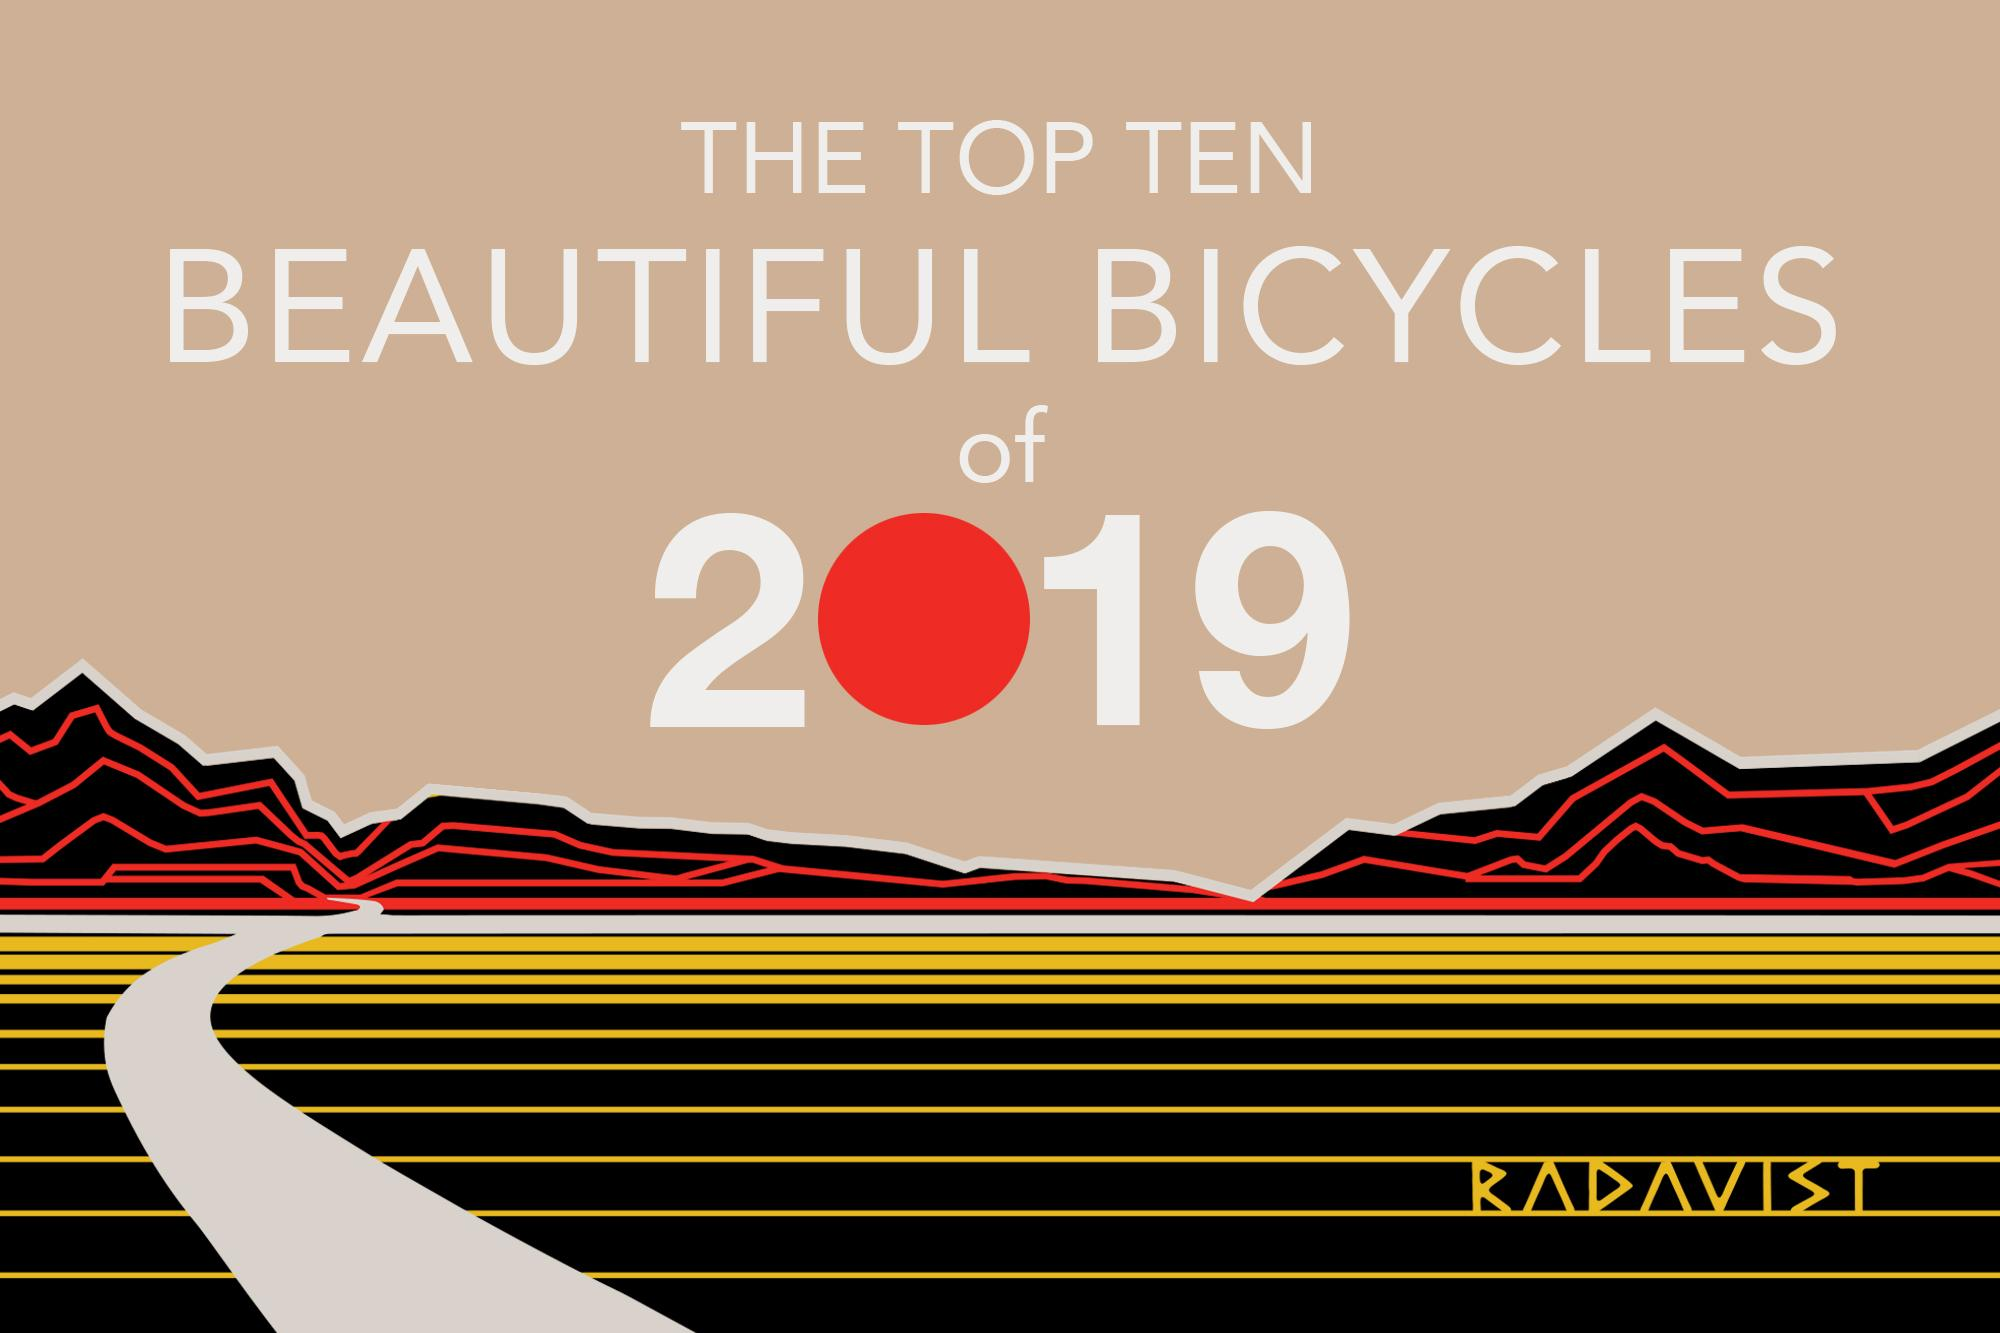 Top Ten Beautiful Bicycles of 2019